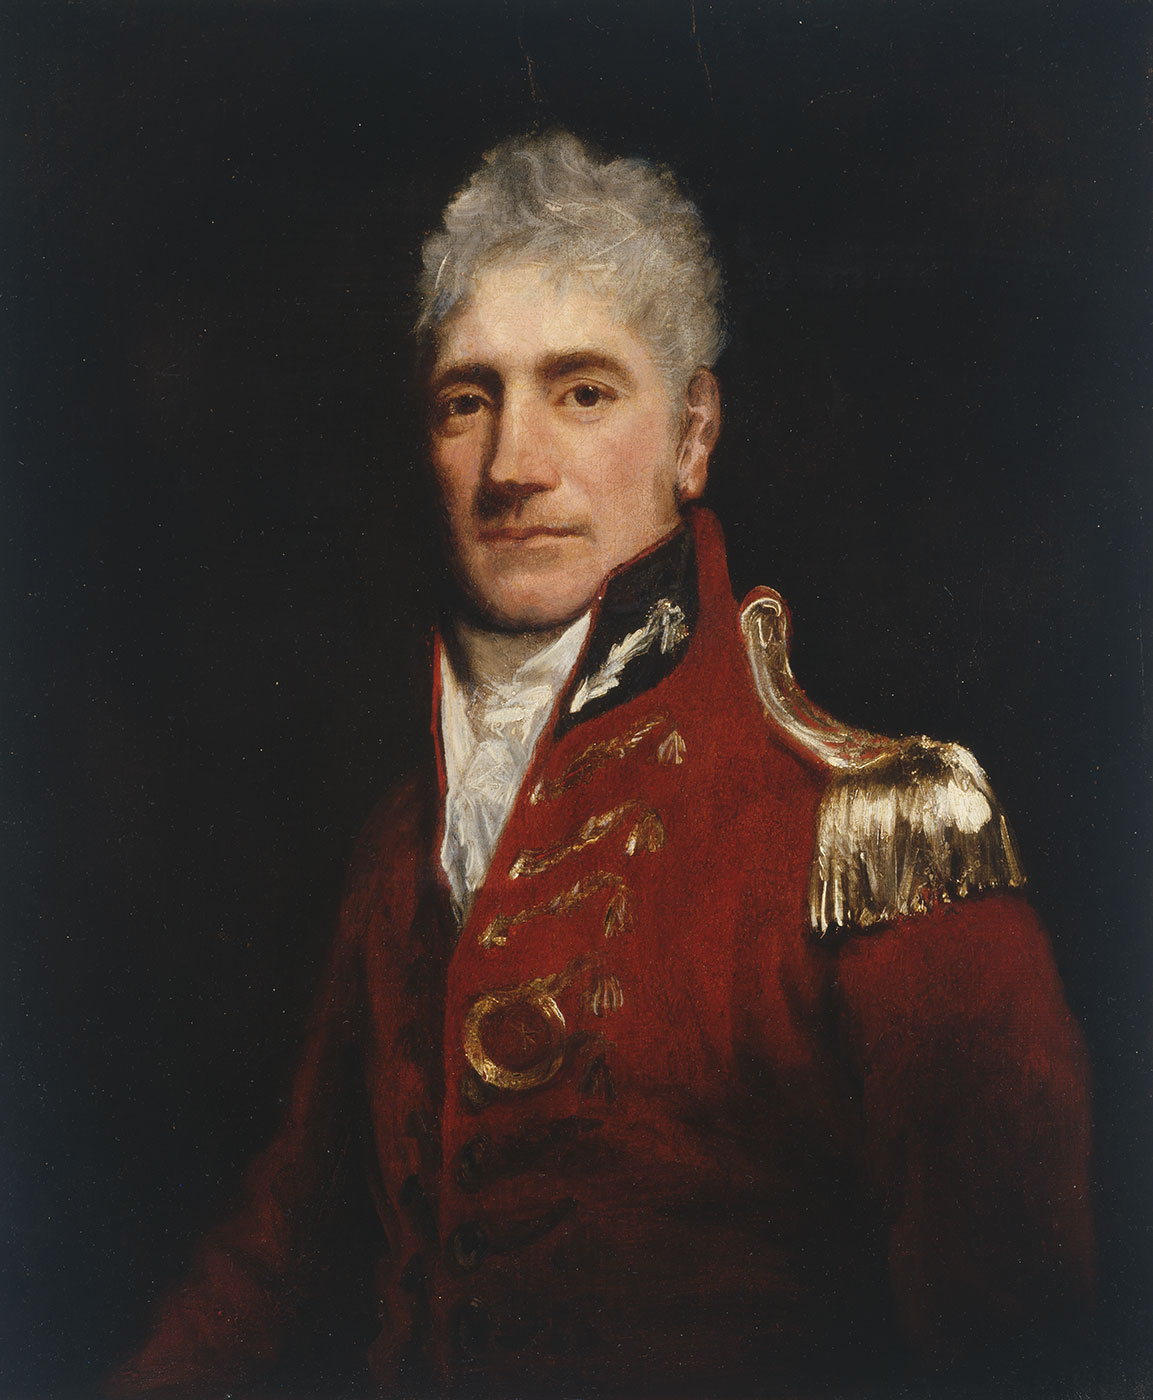 Portrait of Lachlan Macquarie 1805